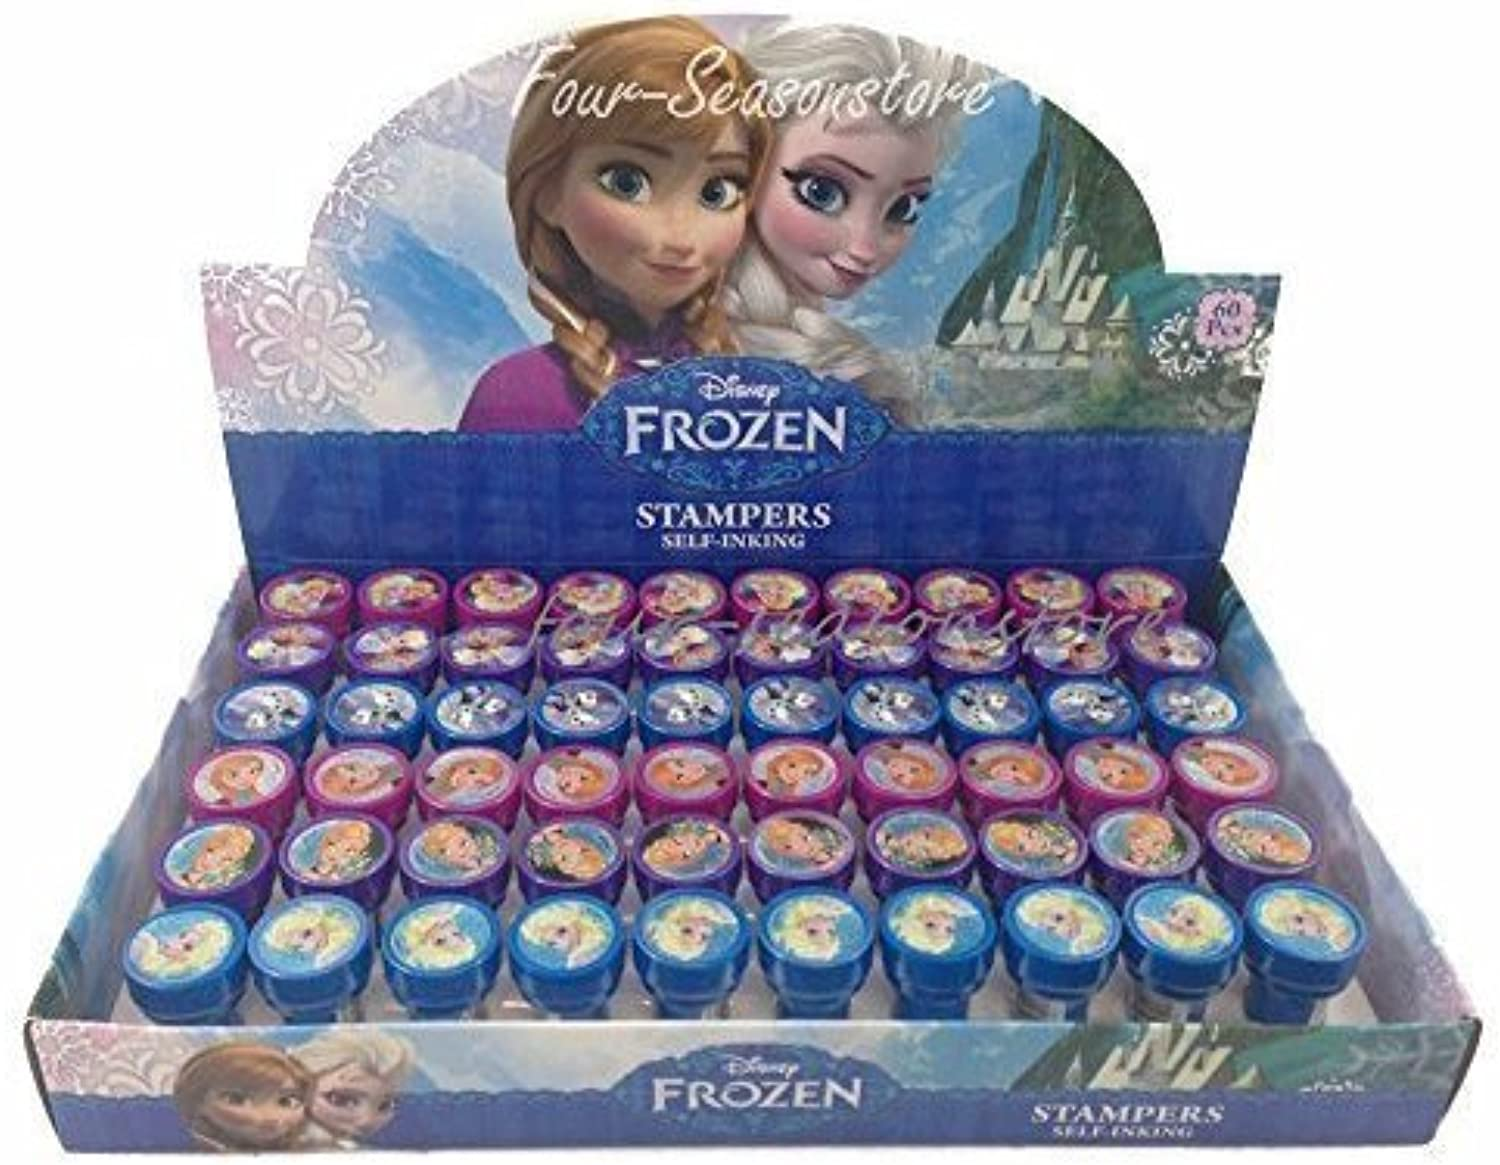 perfecto Disney Frozen Anna Elsa Olaf Olaf Olaf 60x Stampers Self-inking Birthday Party Favors by Disney by Disney  aquí tiene la última